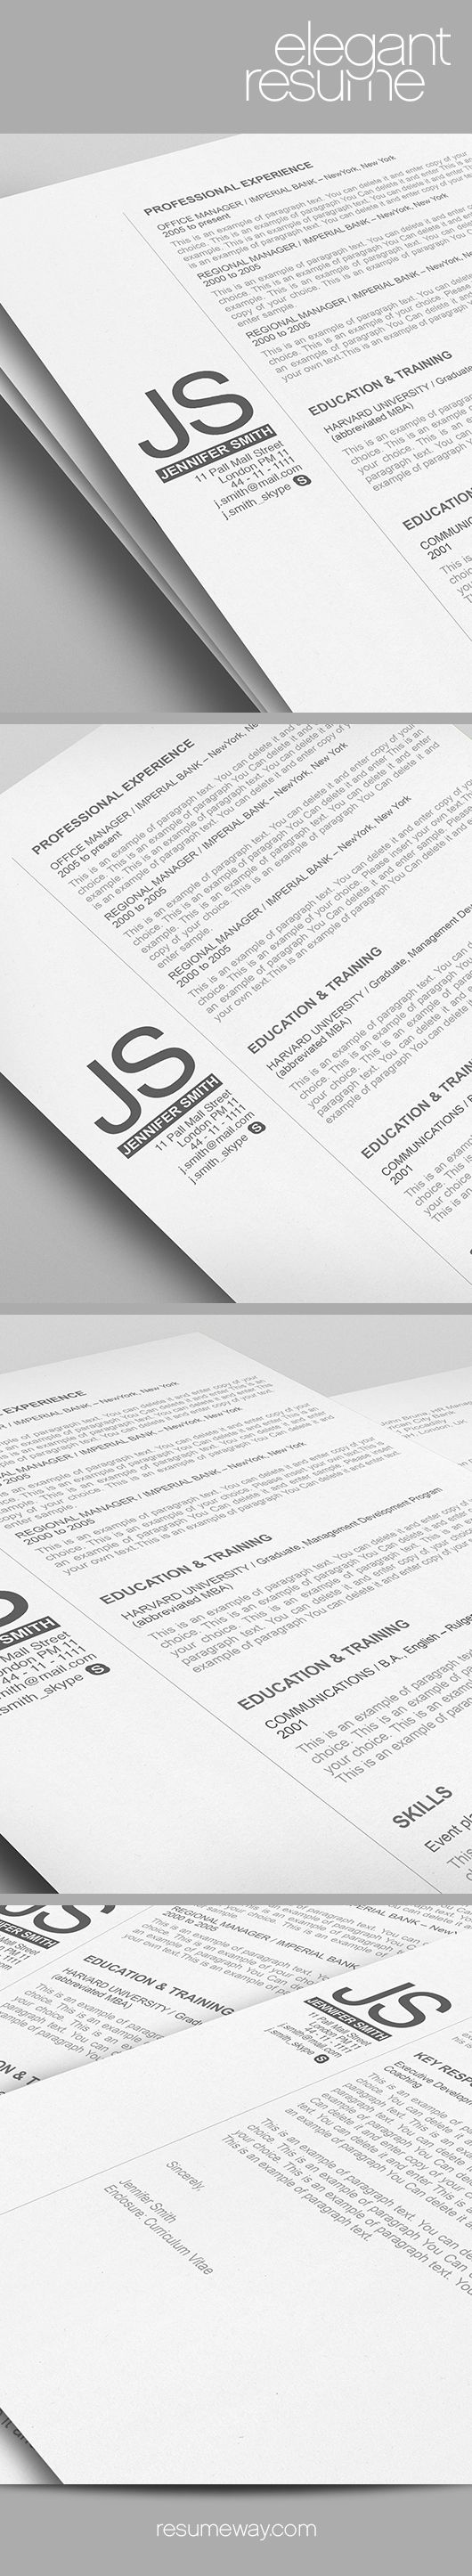 Elegant Resume Template - 110540 - Premium line of Resume & Cover Letter Templates. Easy edit with MS Word, Apple Pages - Resume, Resumes - ResumeWay